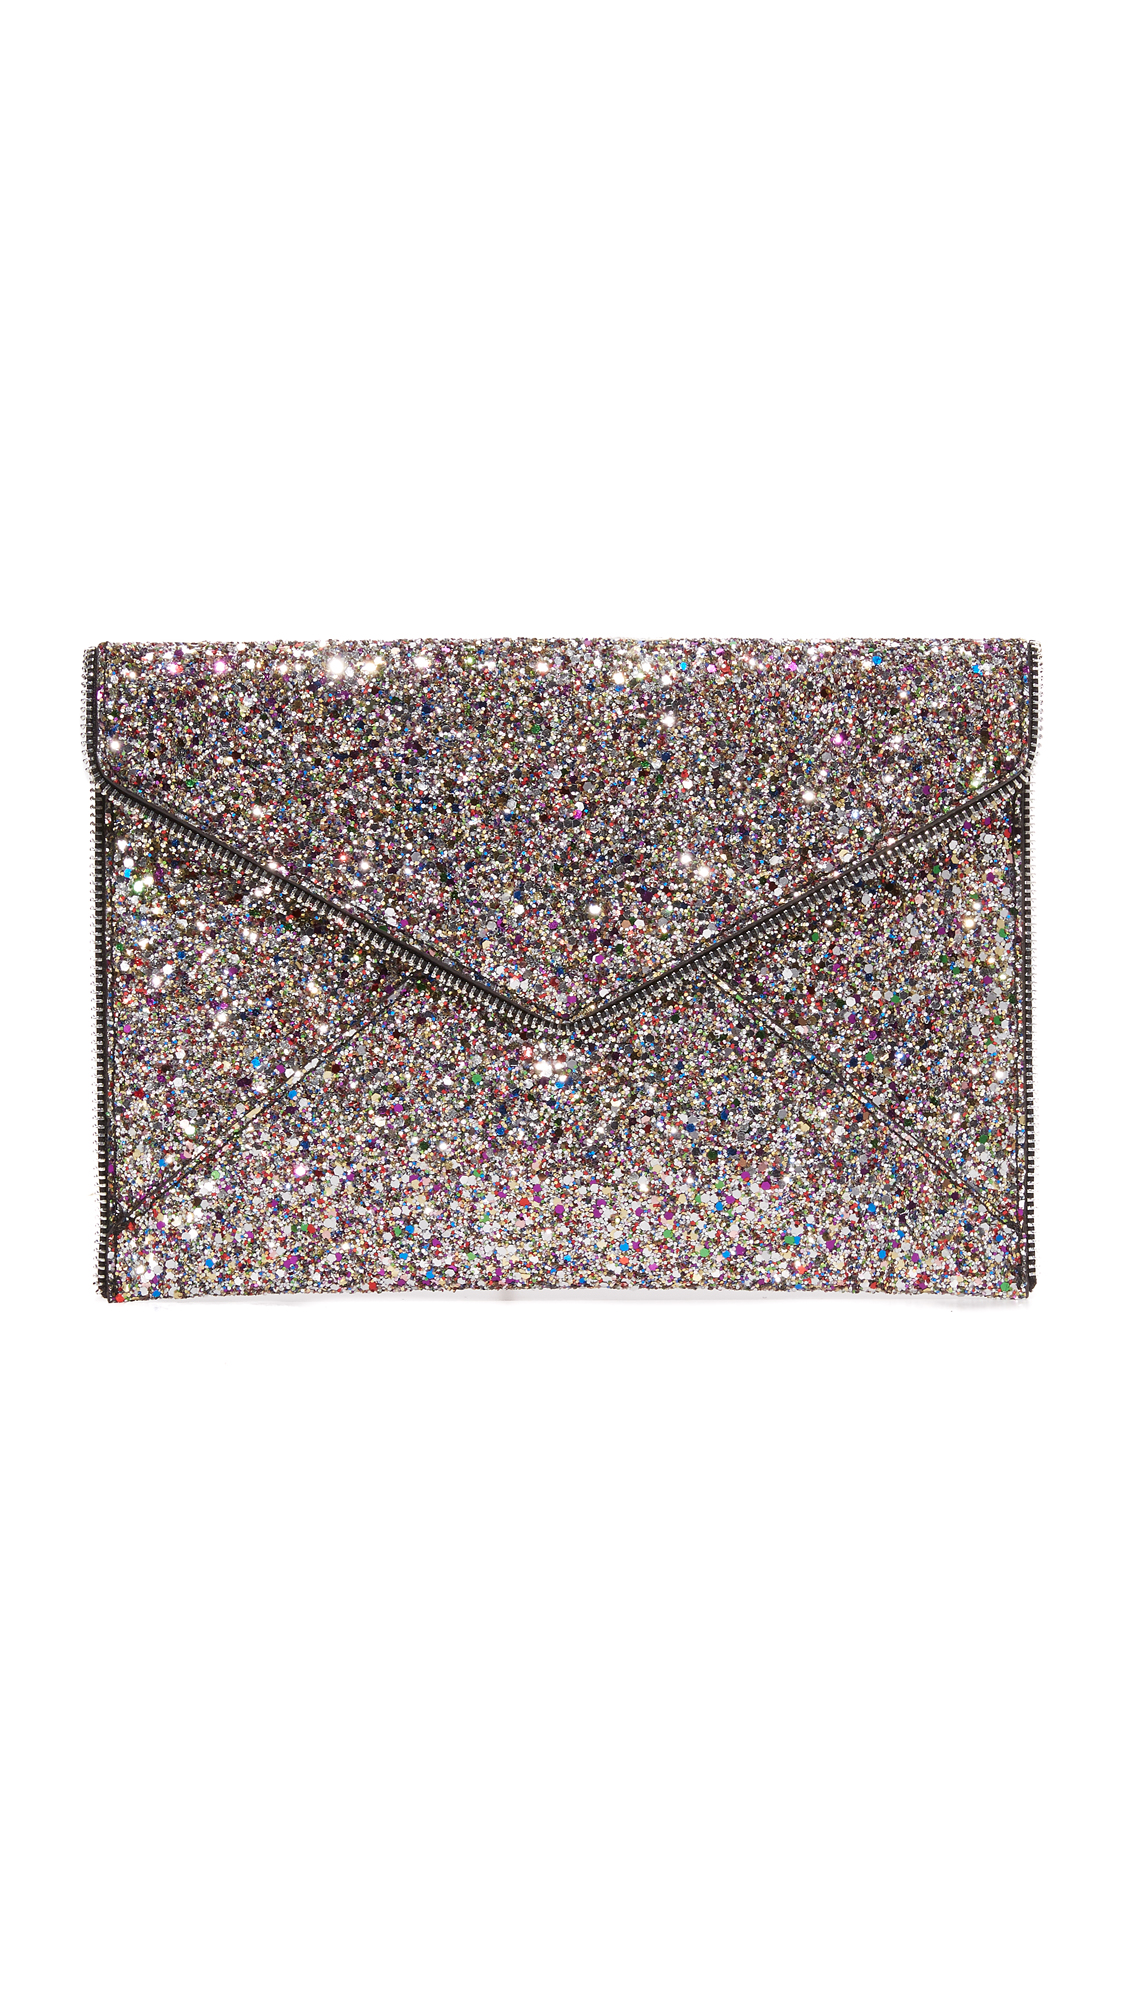 Exposed zipper trim brings industrial edge to this glitter covered Rebecca Minkoff clutch. The magnetic front flap lifts to reveal a lined interior with 6 card slots. Leather: Cowhide. Weight: 10oz / 0.28kg. Imported, China. Measurements Height: 7.5in / 19